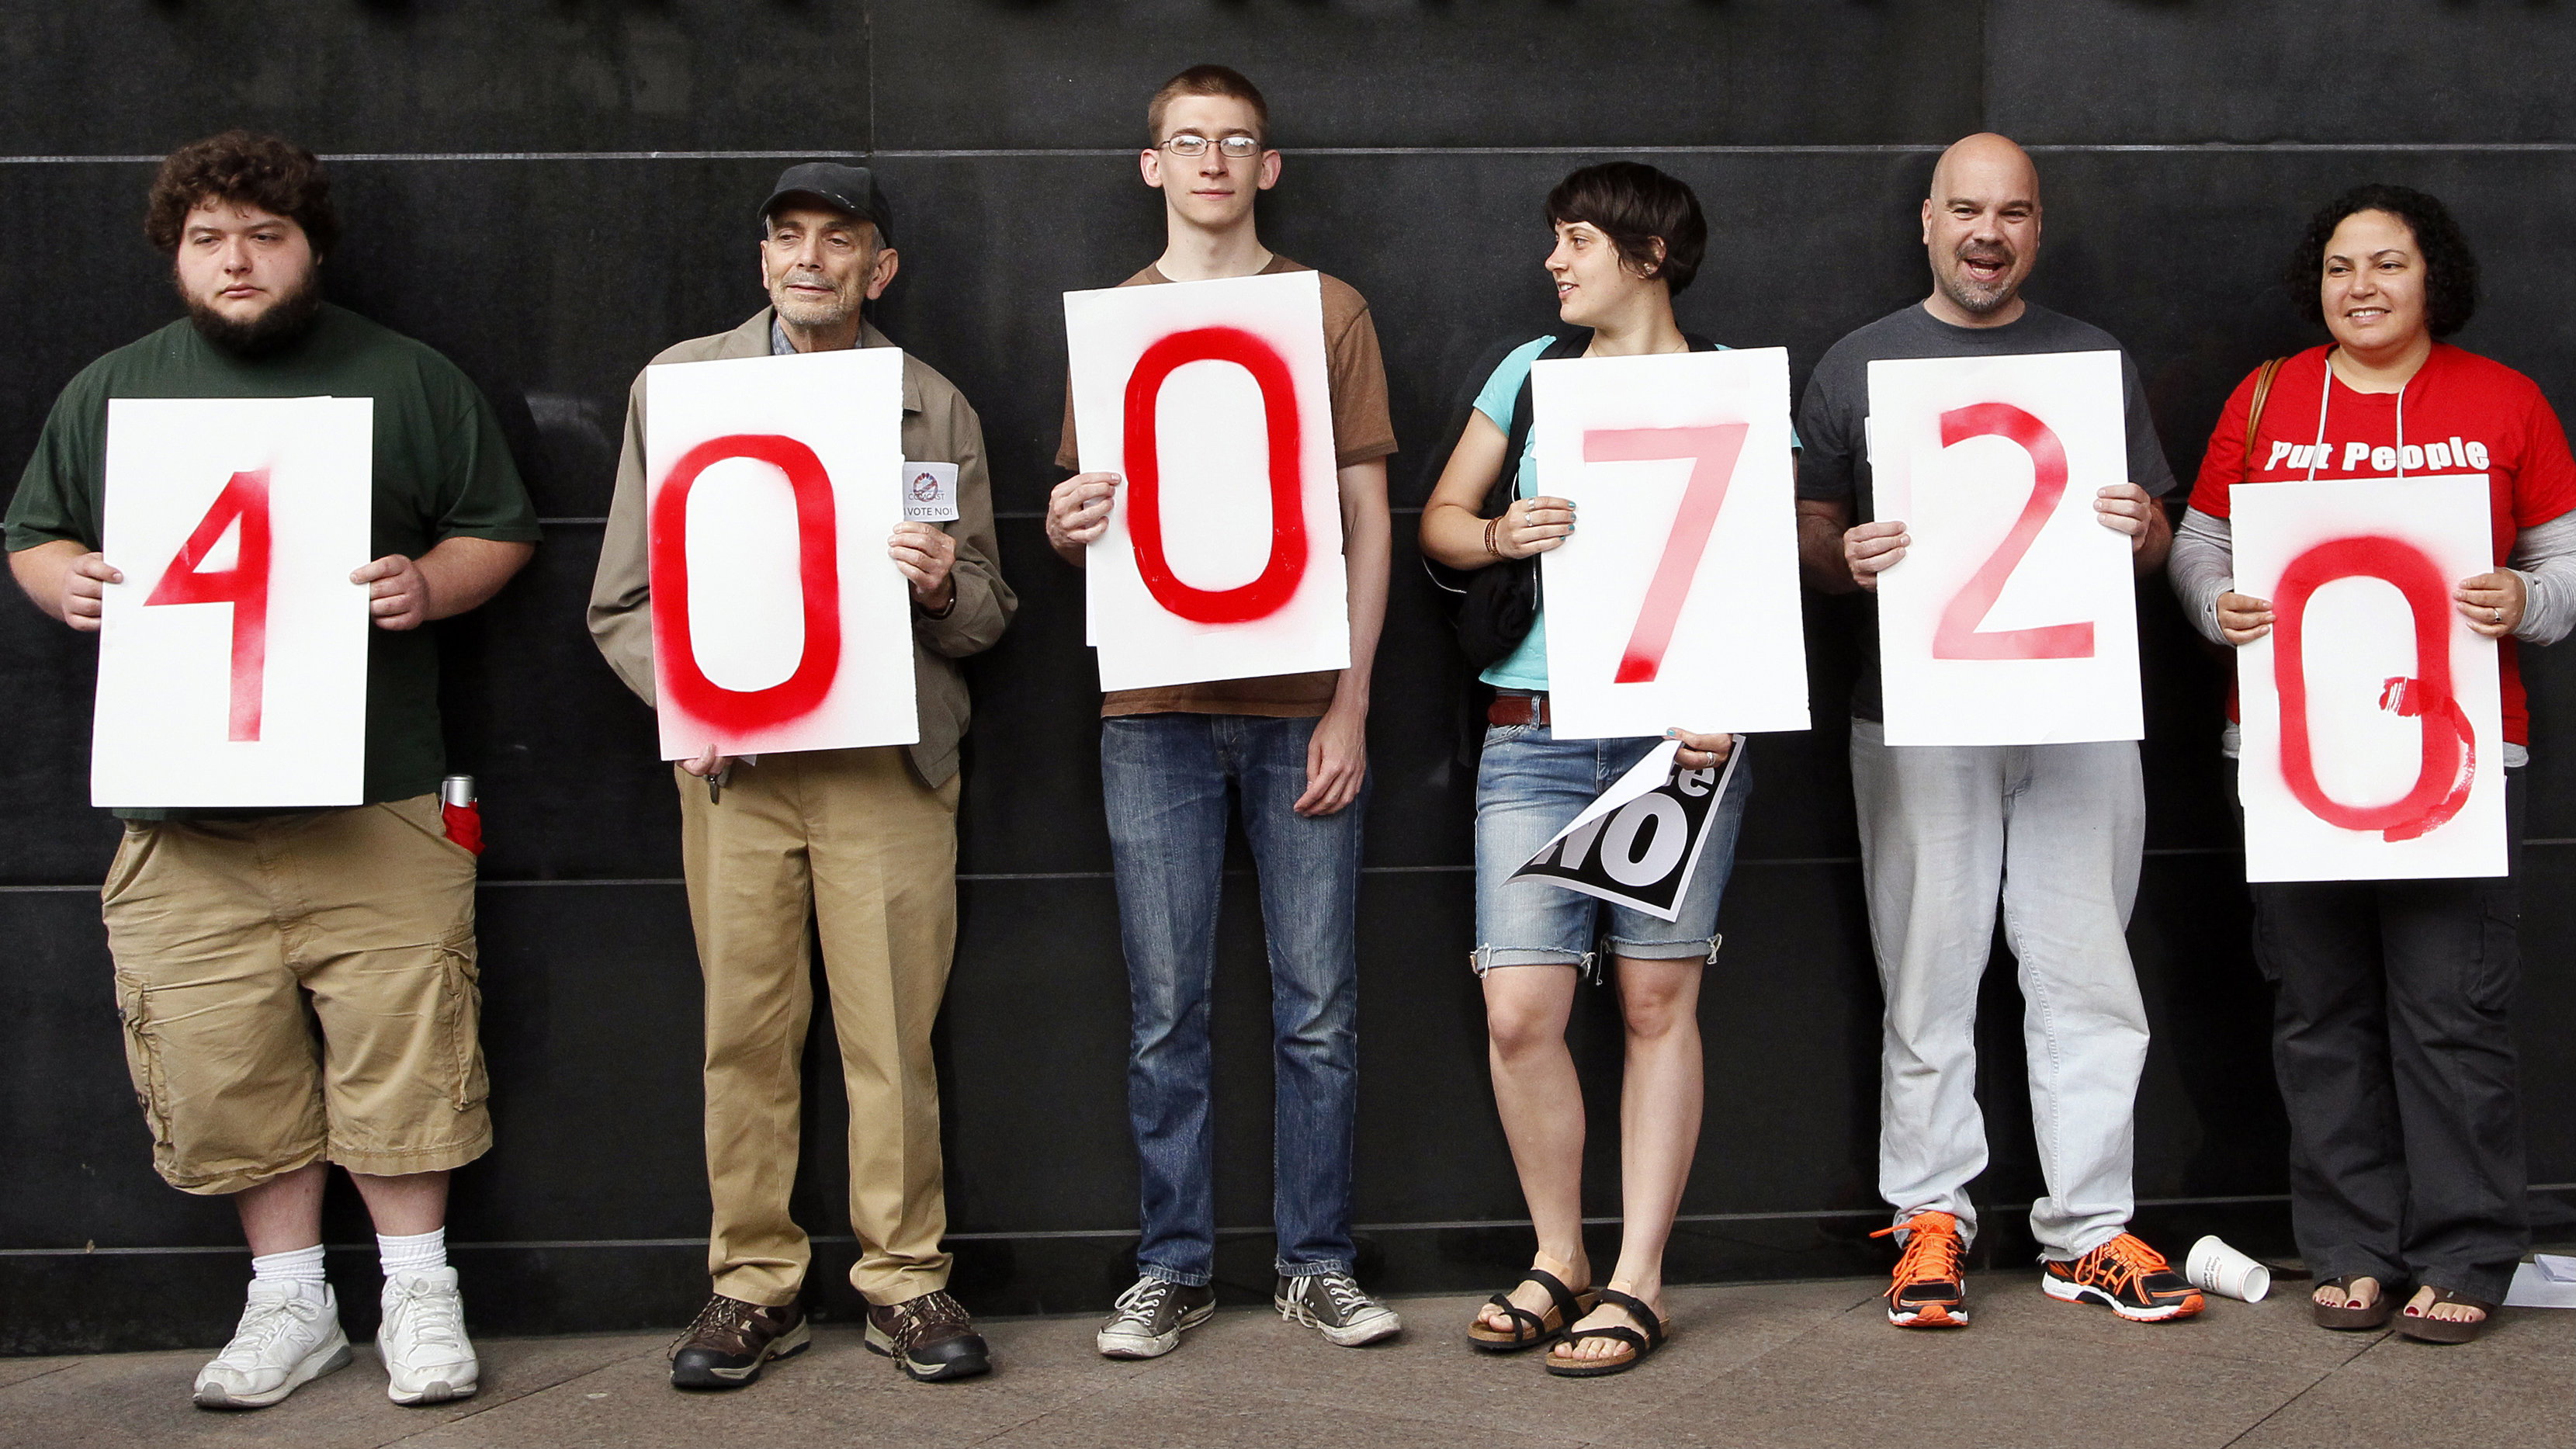 people holding numbers